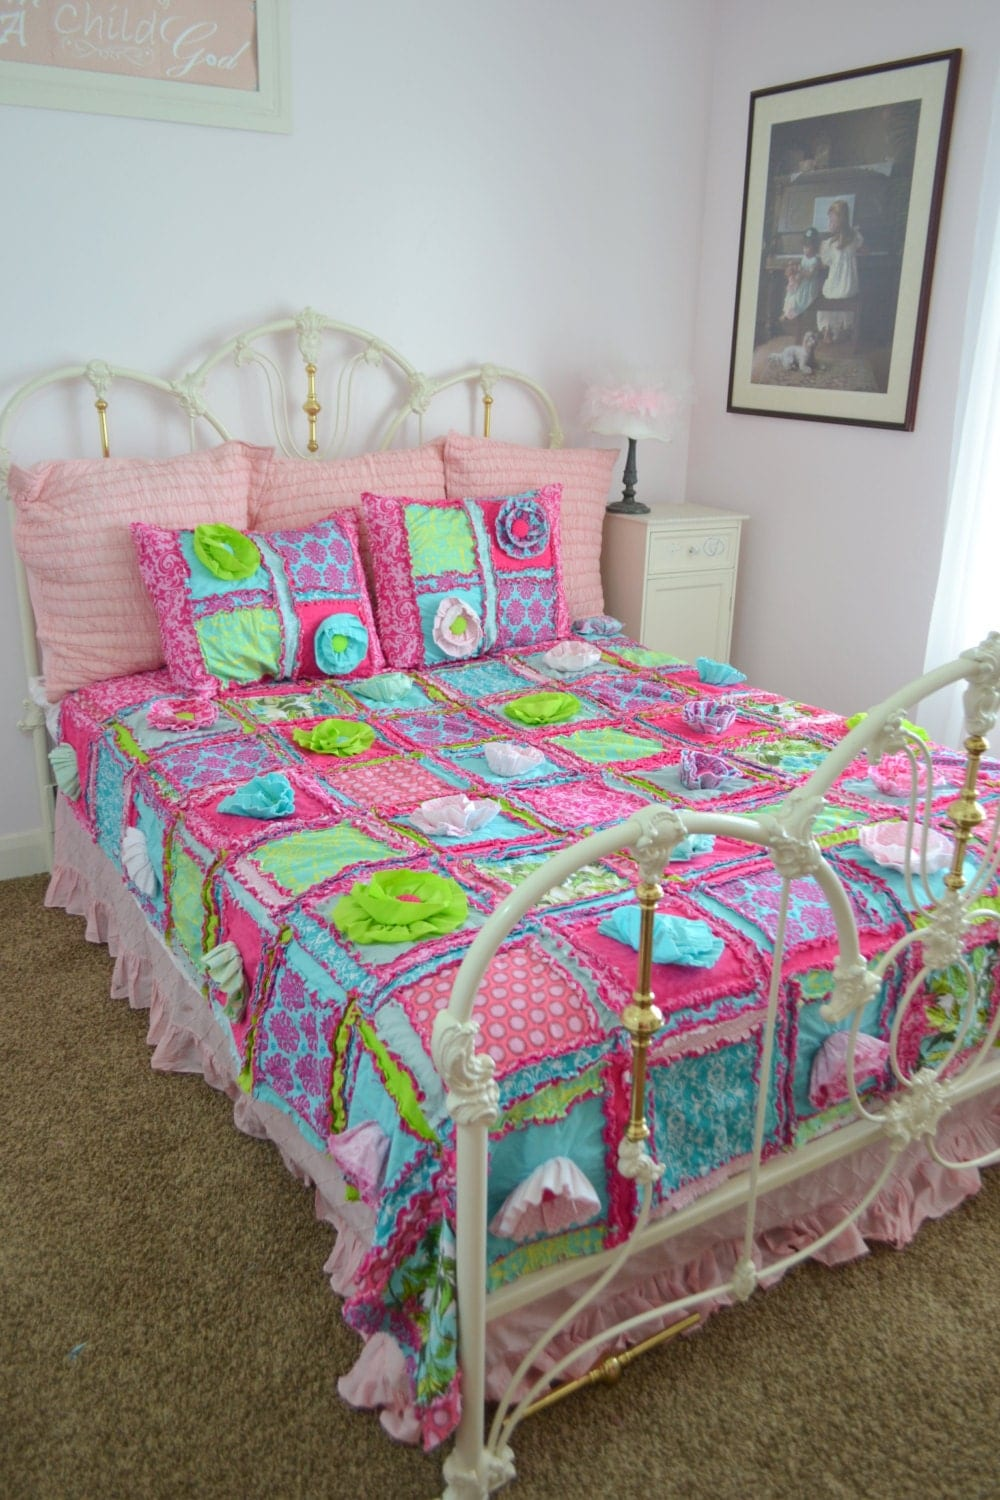 New Ruffle Flower Rag Quilt In Turquoise And Pink In